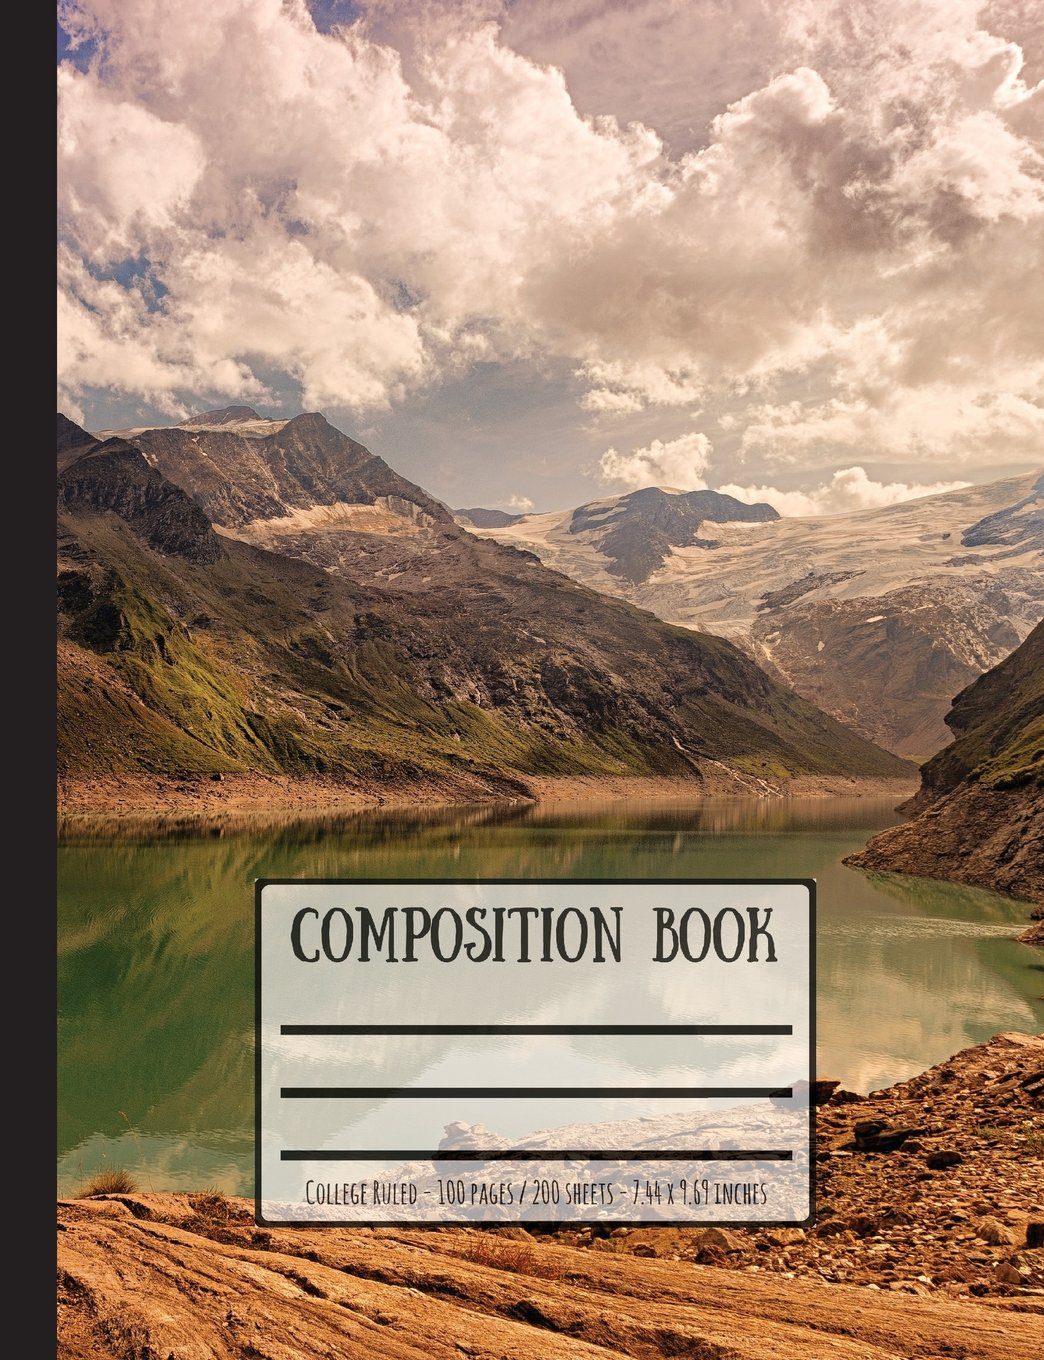 Mountains, Lakes & Rocks Composition Book: College Ruled - 100 Pages / 200 Sheets - 7.44 x 9.69 inches ebook